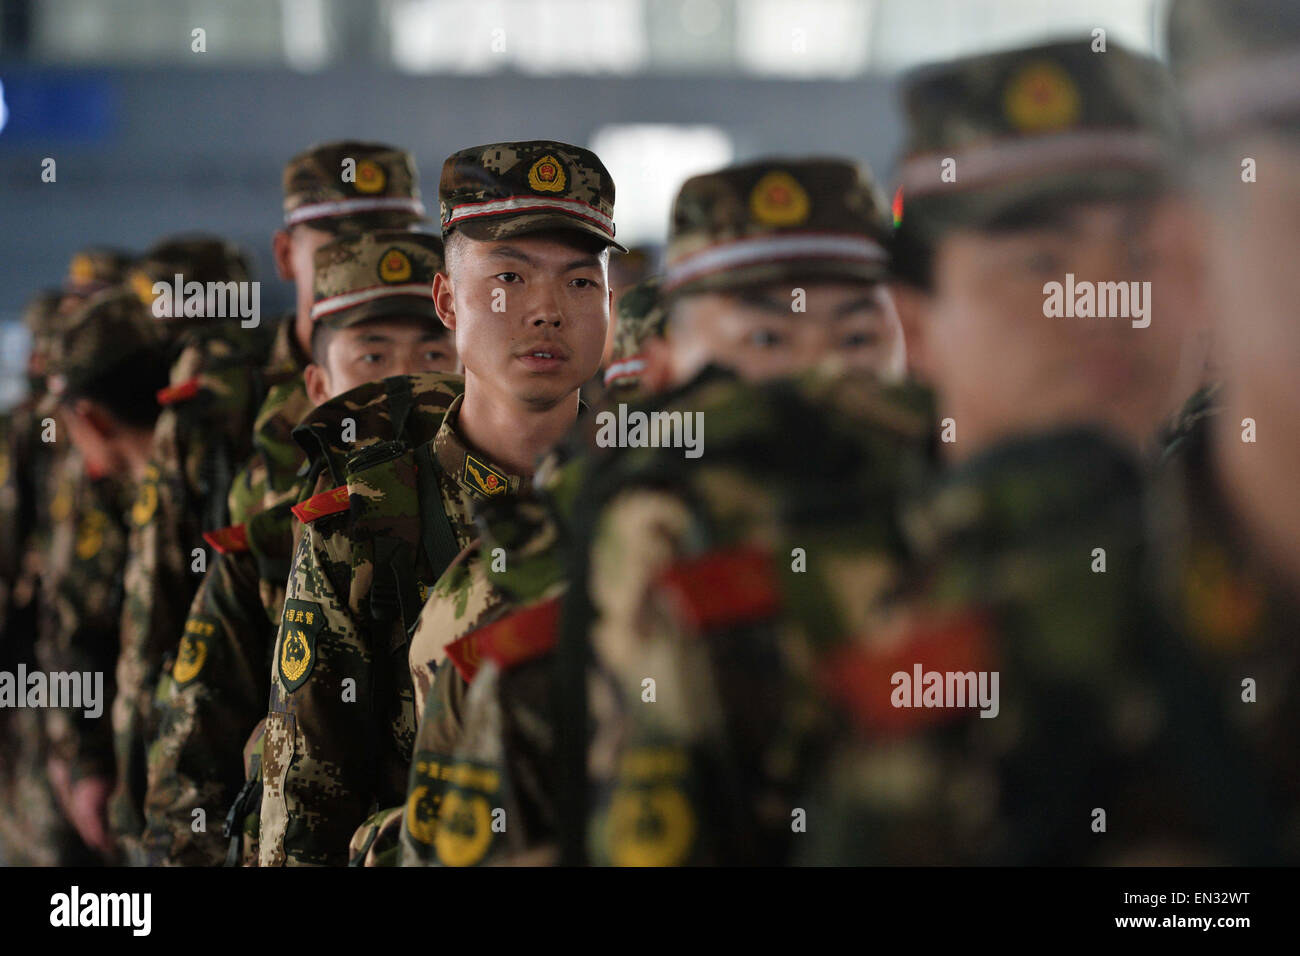 Lanzhou, China's Gansu Province. 27th Apr, 2015. Soldiers prepare to board a train at Lanzhou West Railway Station - Stock Image